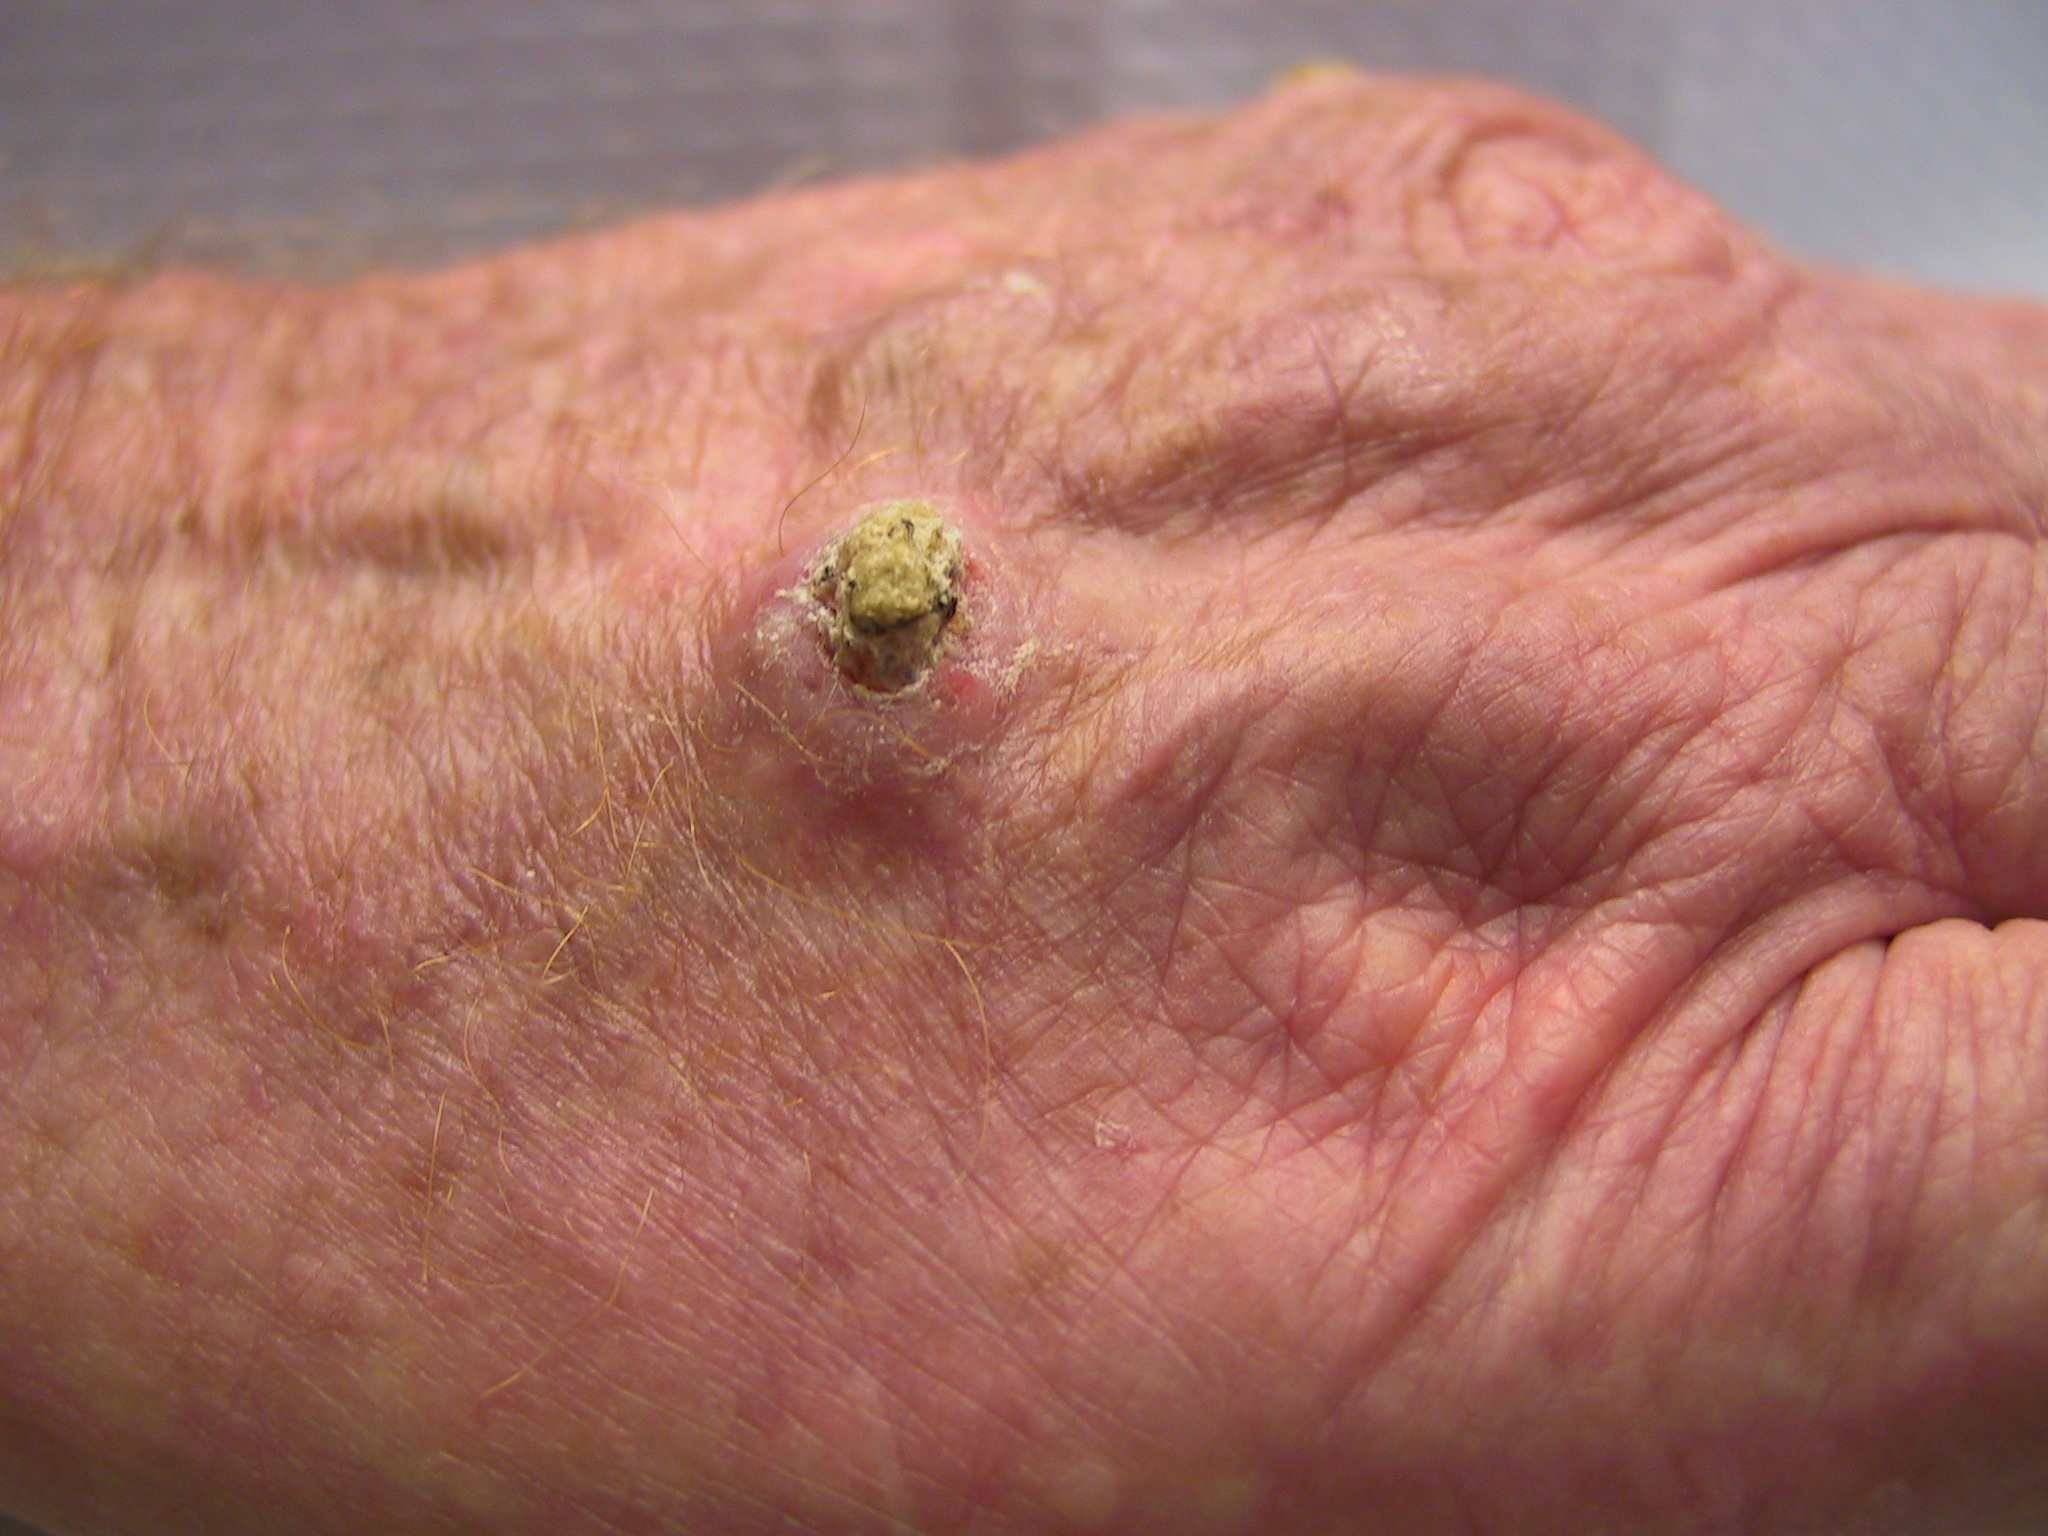 Carcinoma Skin Cancer Symptoms Pictures Wallpapers